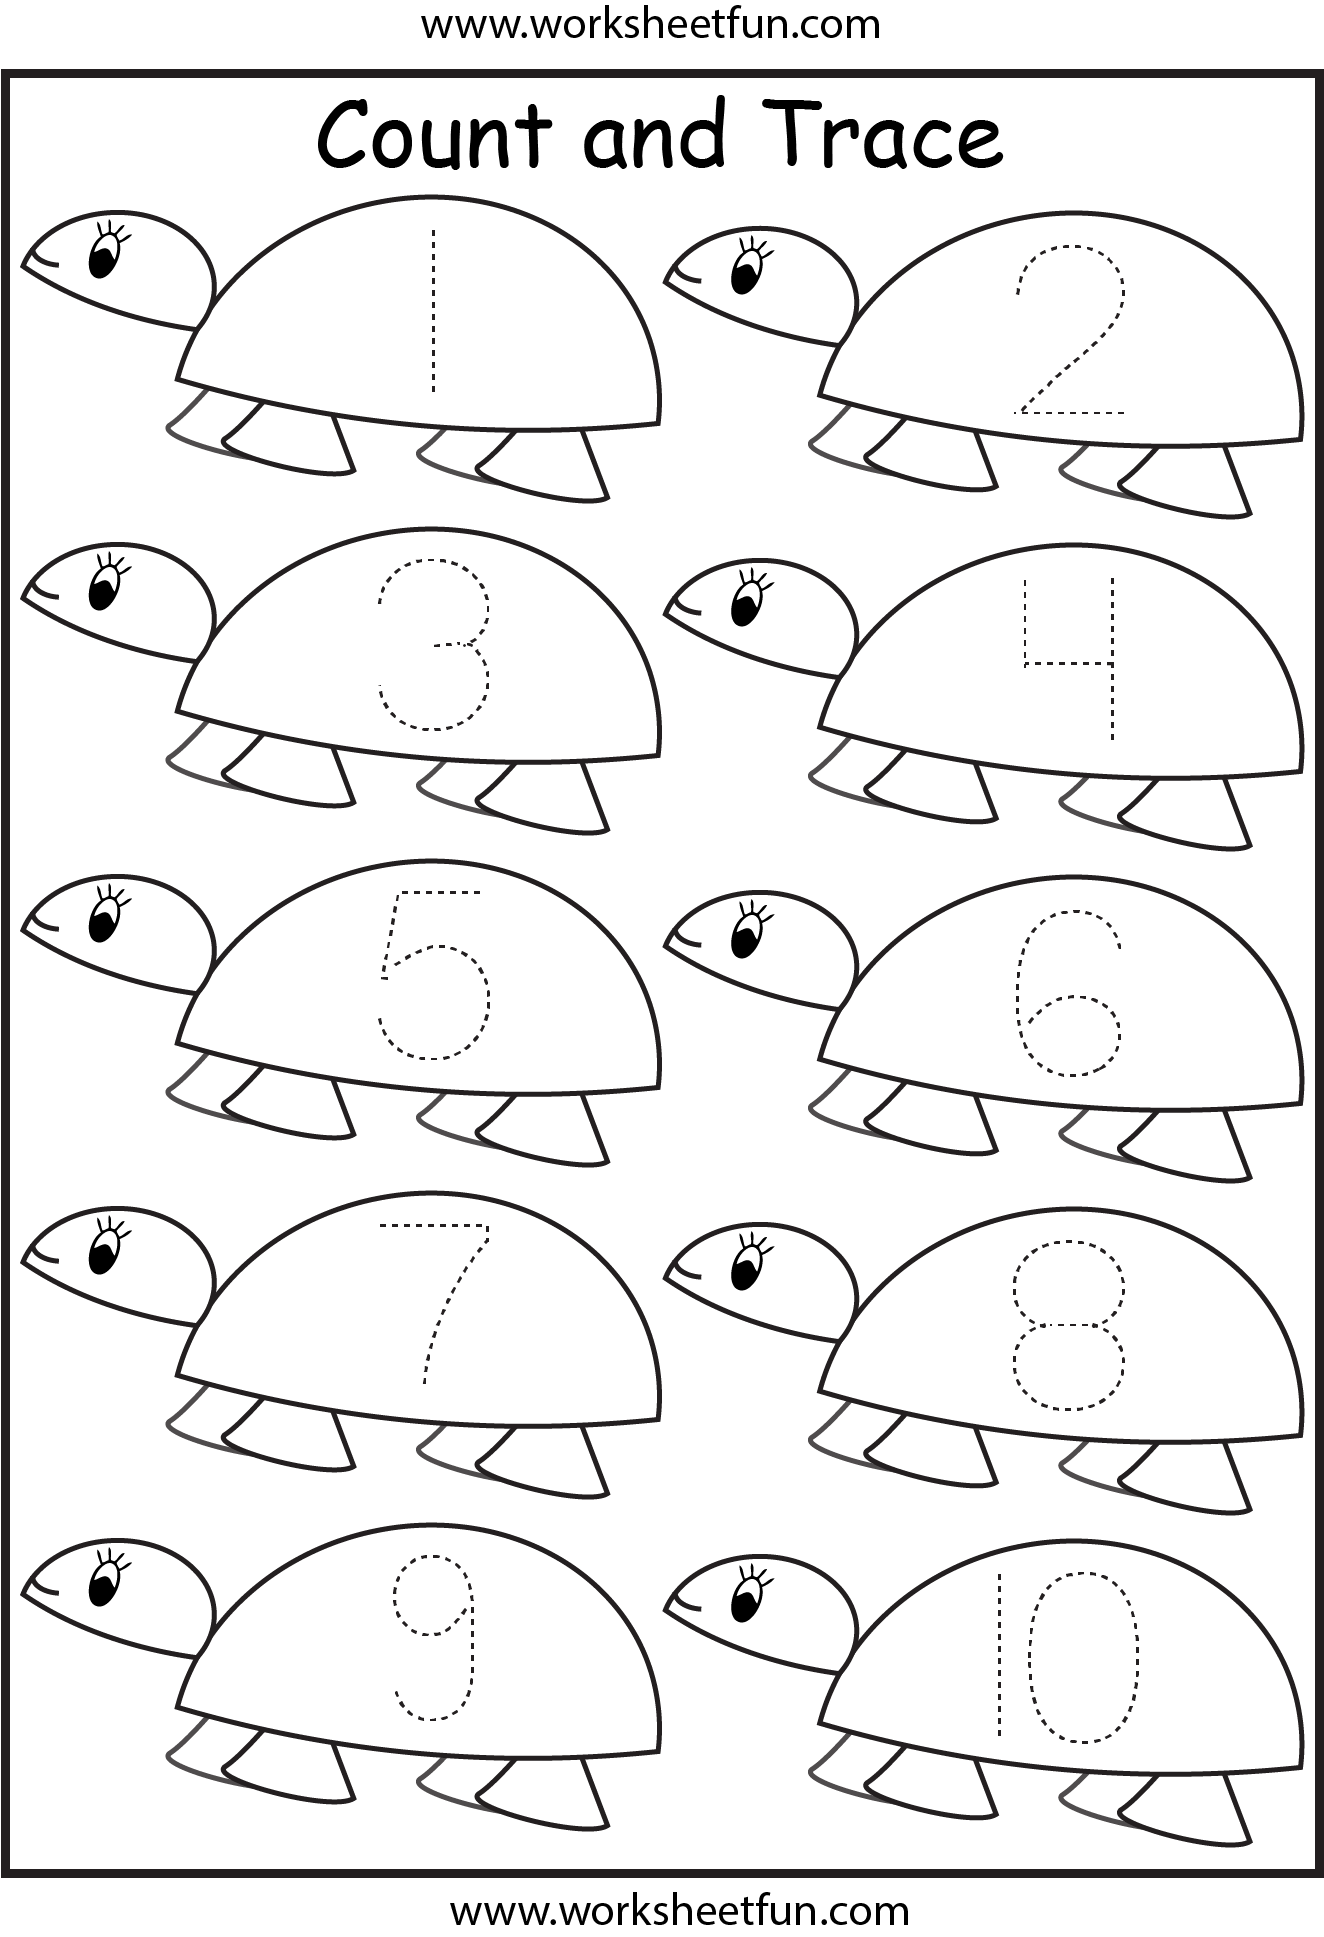 8 Images of Number Tracing Worksheets Free Printable